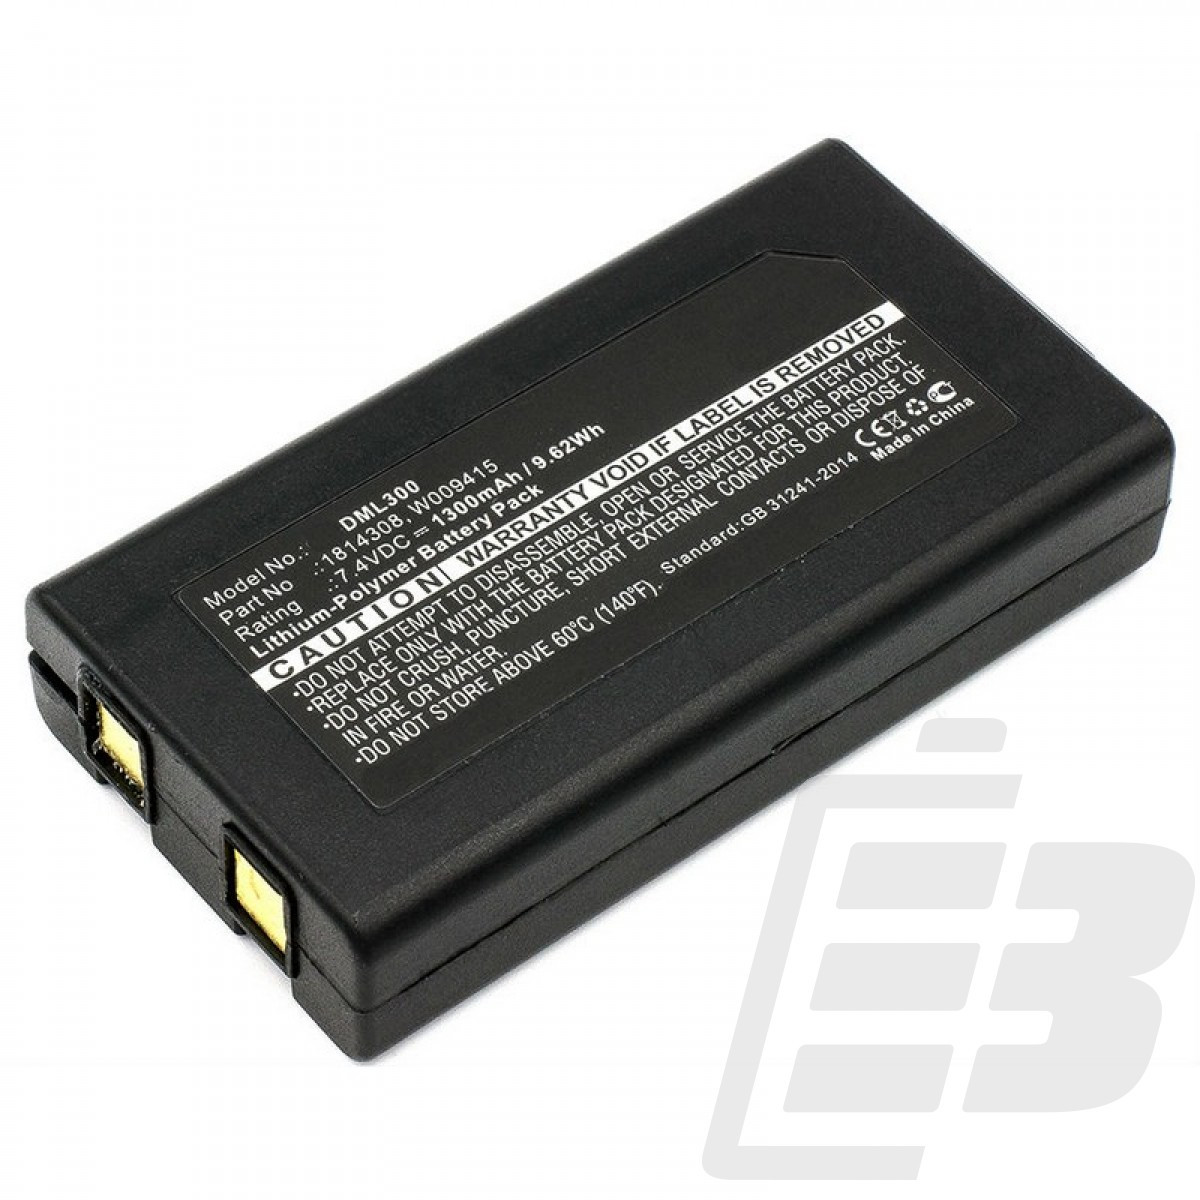 Printer battery Dymo LabelManager 500TS_1